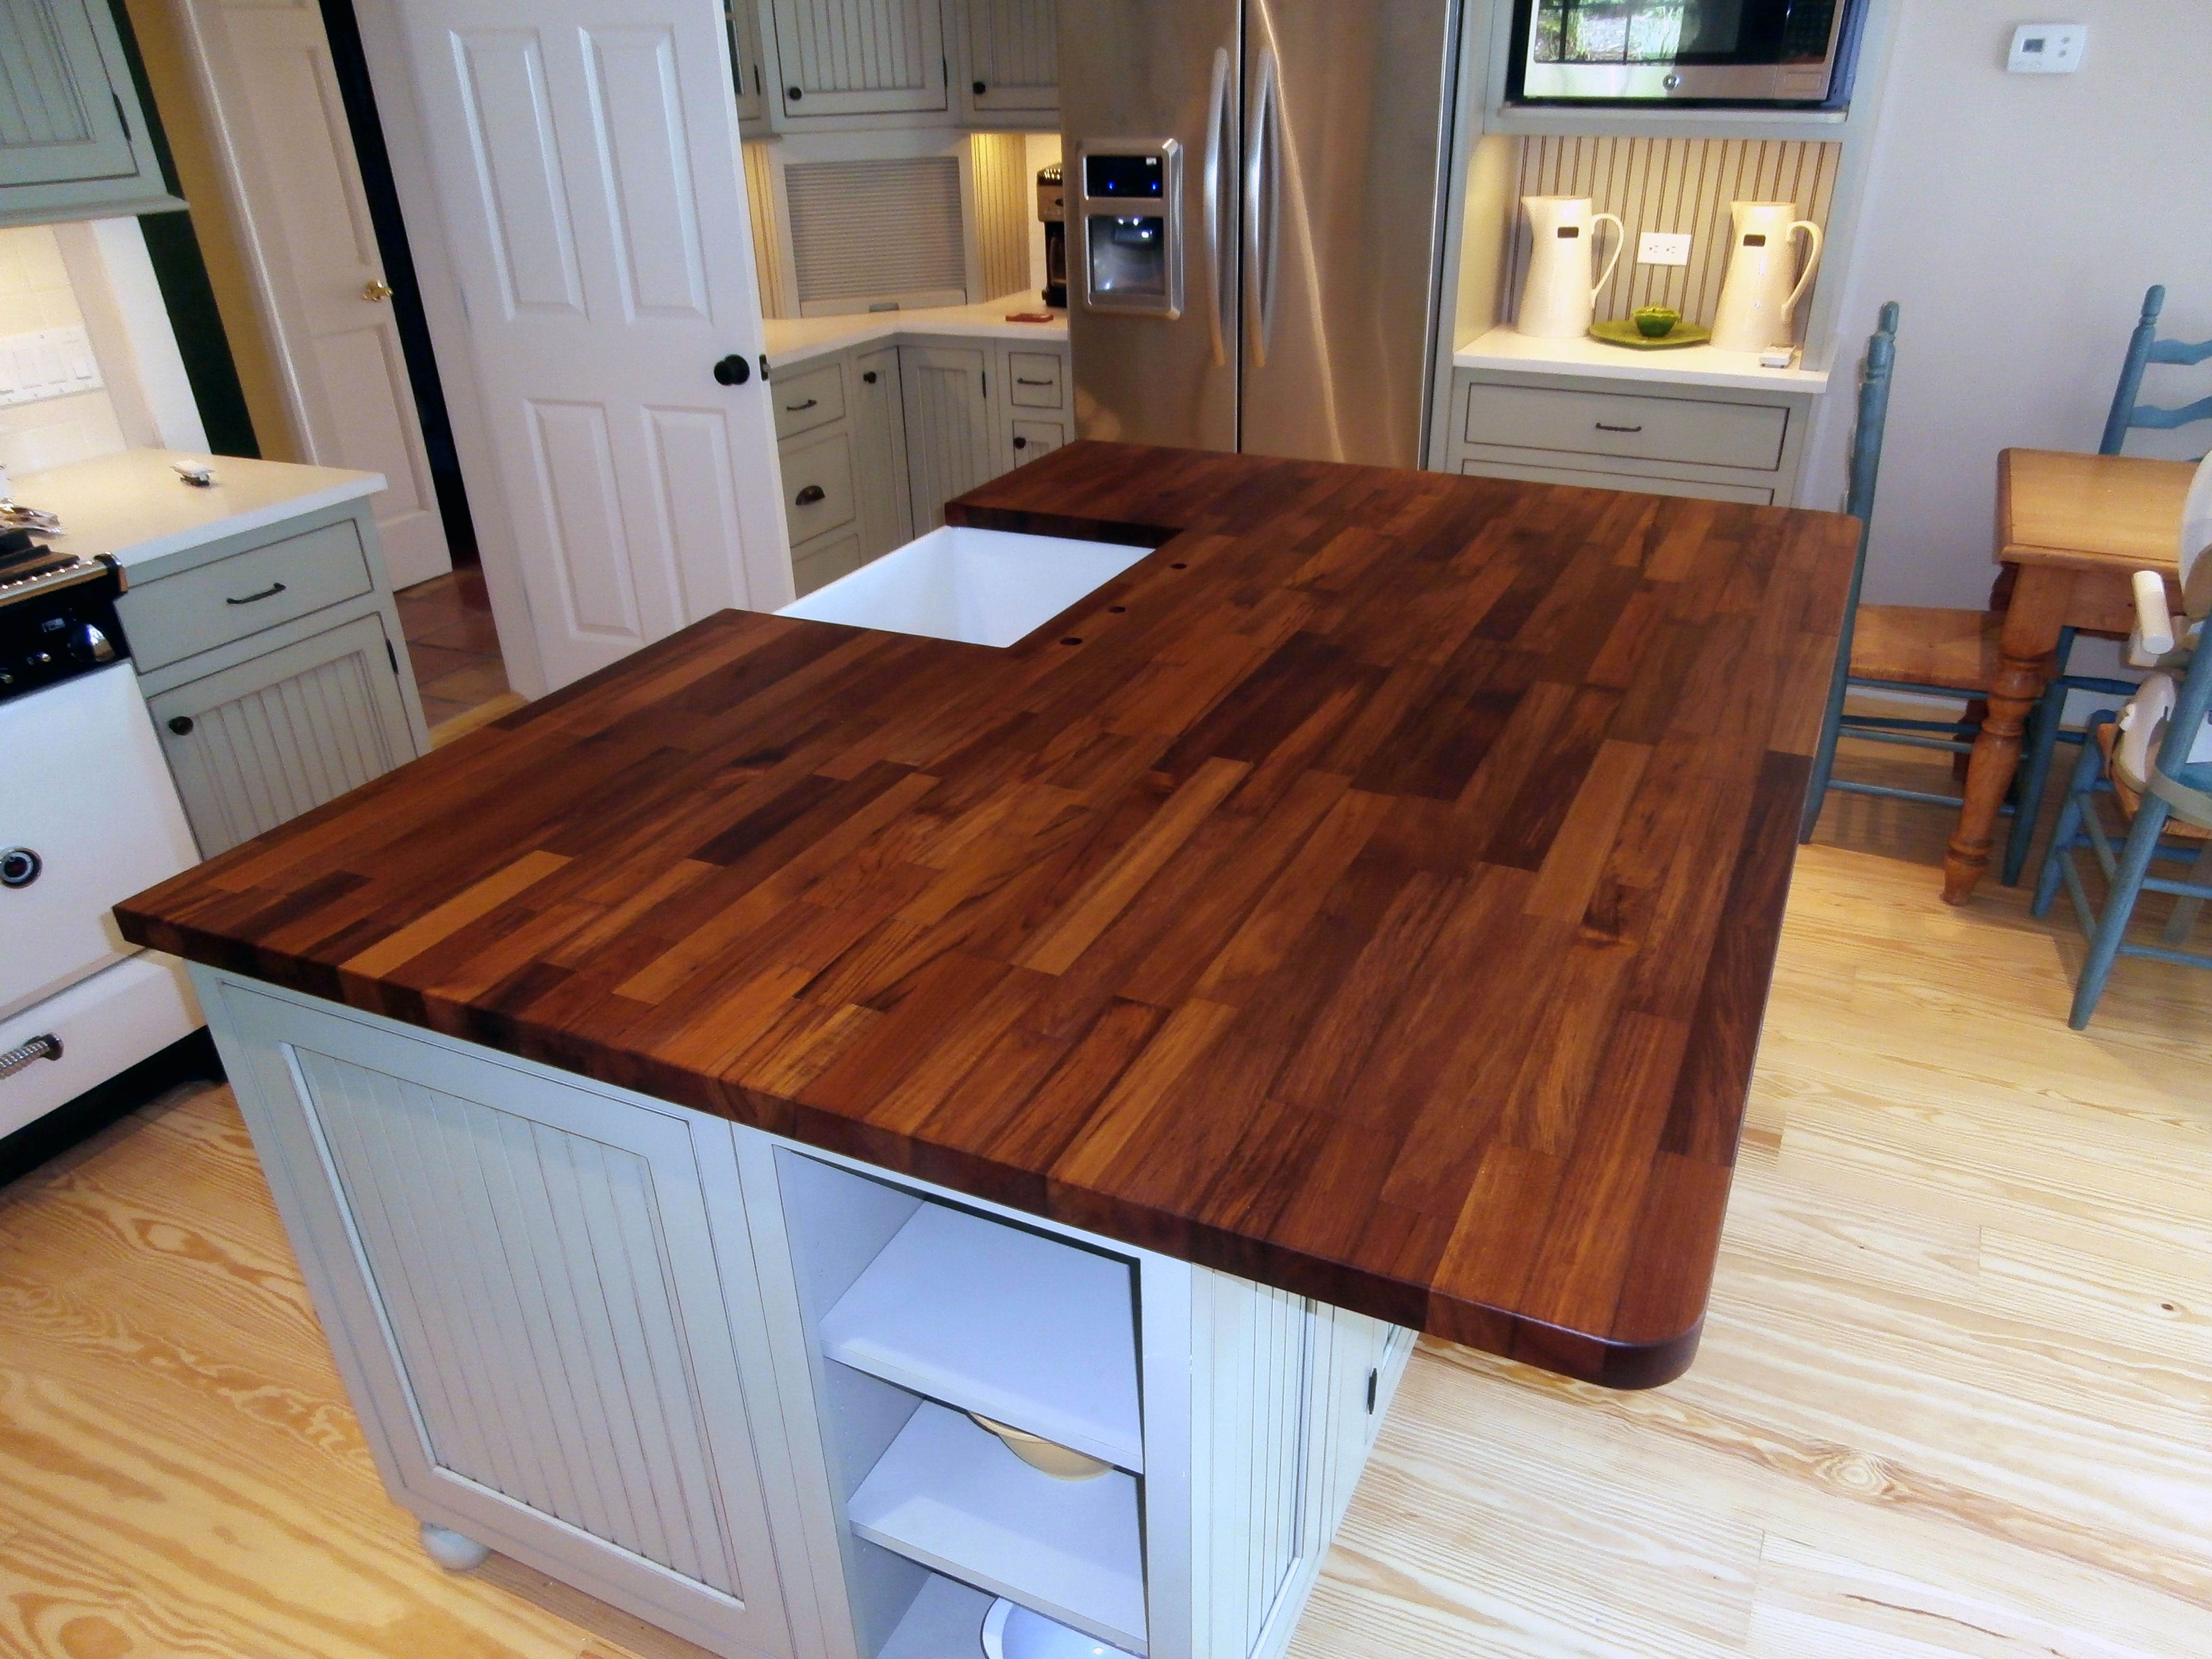 Interior Millbrook Kitchen Cabinets teak eco pro kitchen island countertop this top was made for millbrook cabinetry and